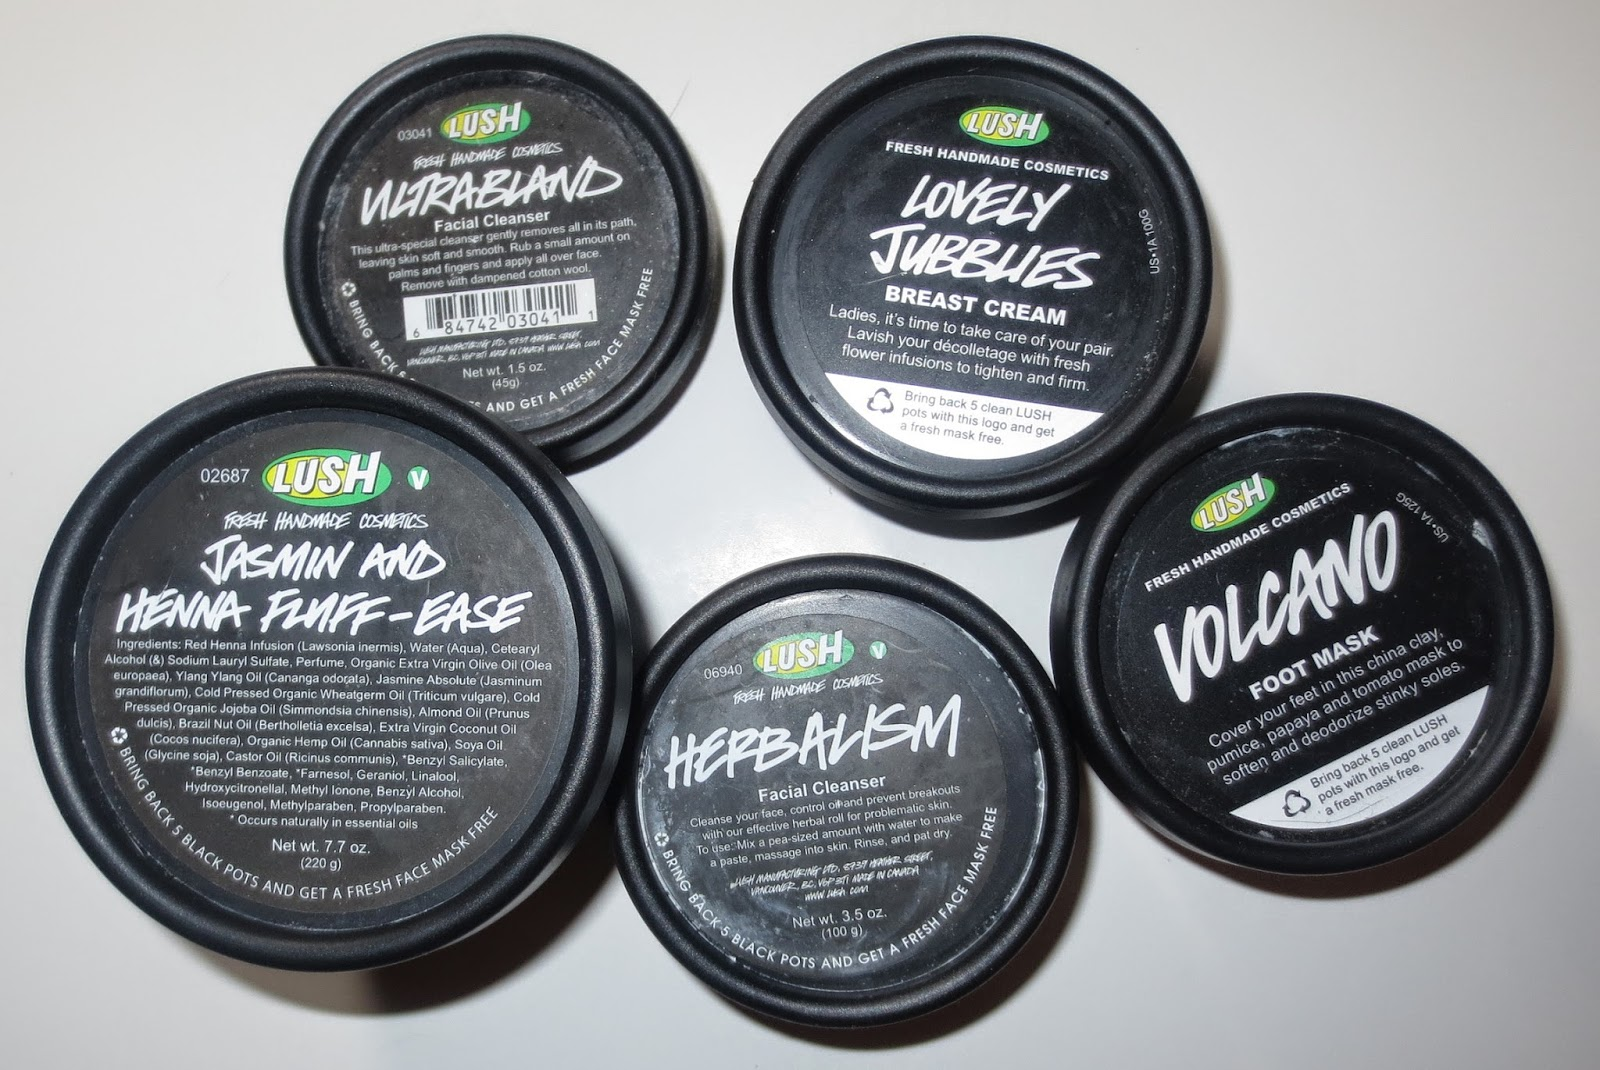 Lush's Recycling Program